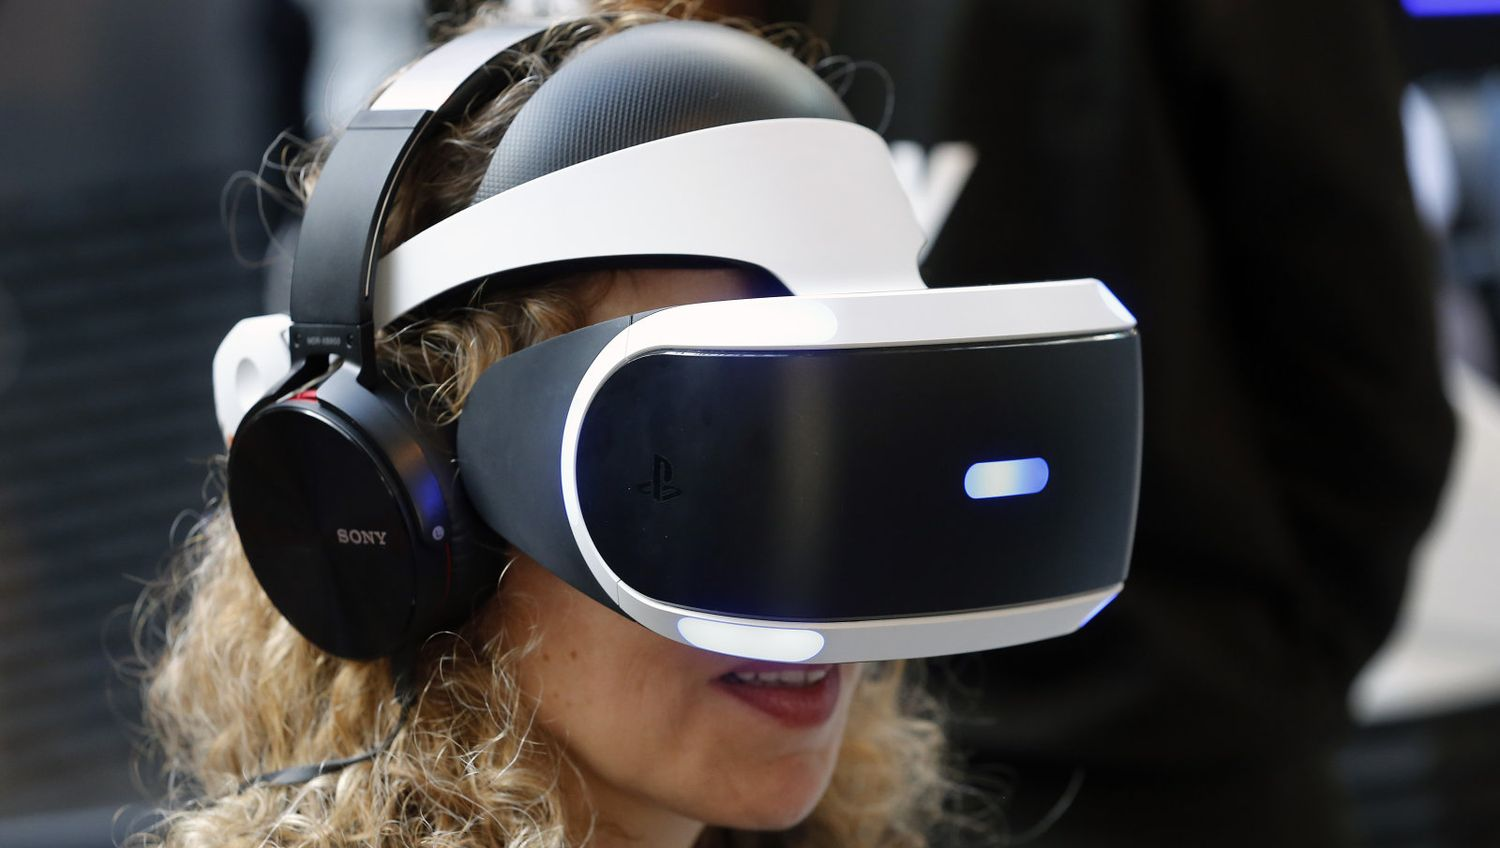 Sales of the PlayStation VR headset exceeded expectations Sony